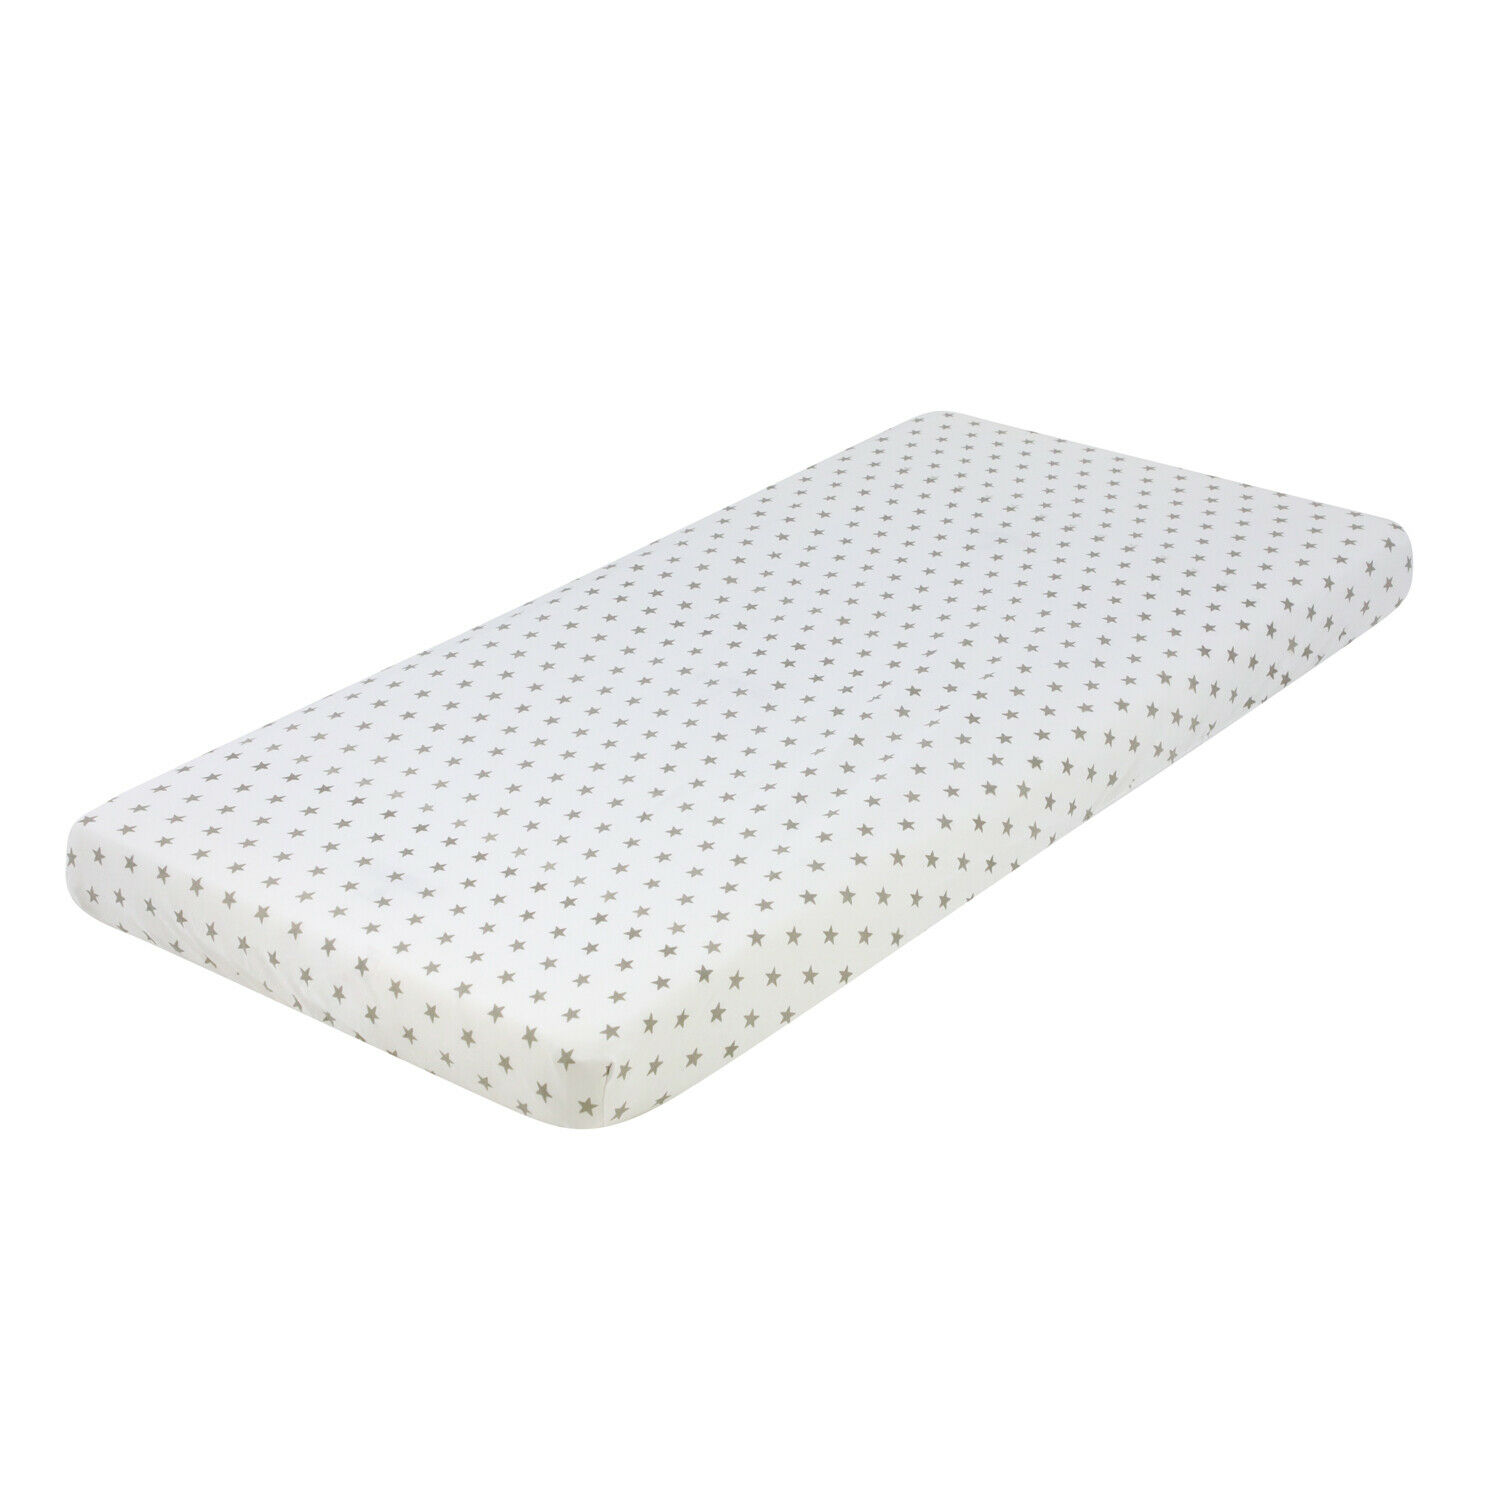 Jersey-Fitted-Sheet-Cotton-Moses-Basket-Crib-Cot-Bed-Toddler-Travel-Next-2-Me thumbnail 16